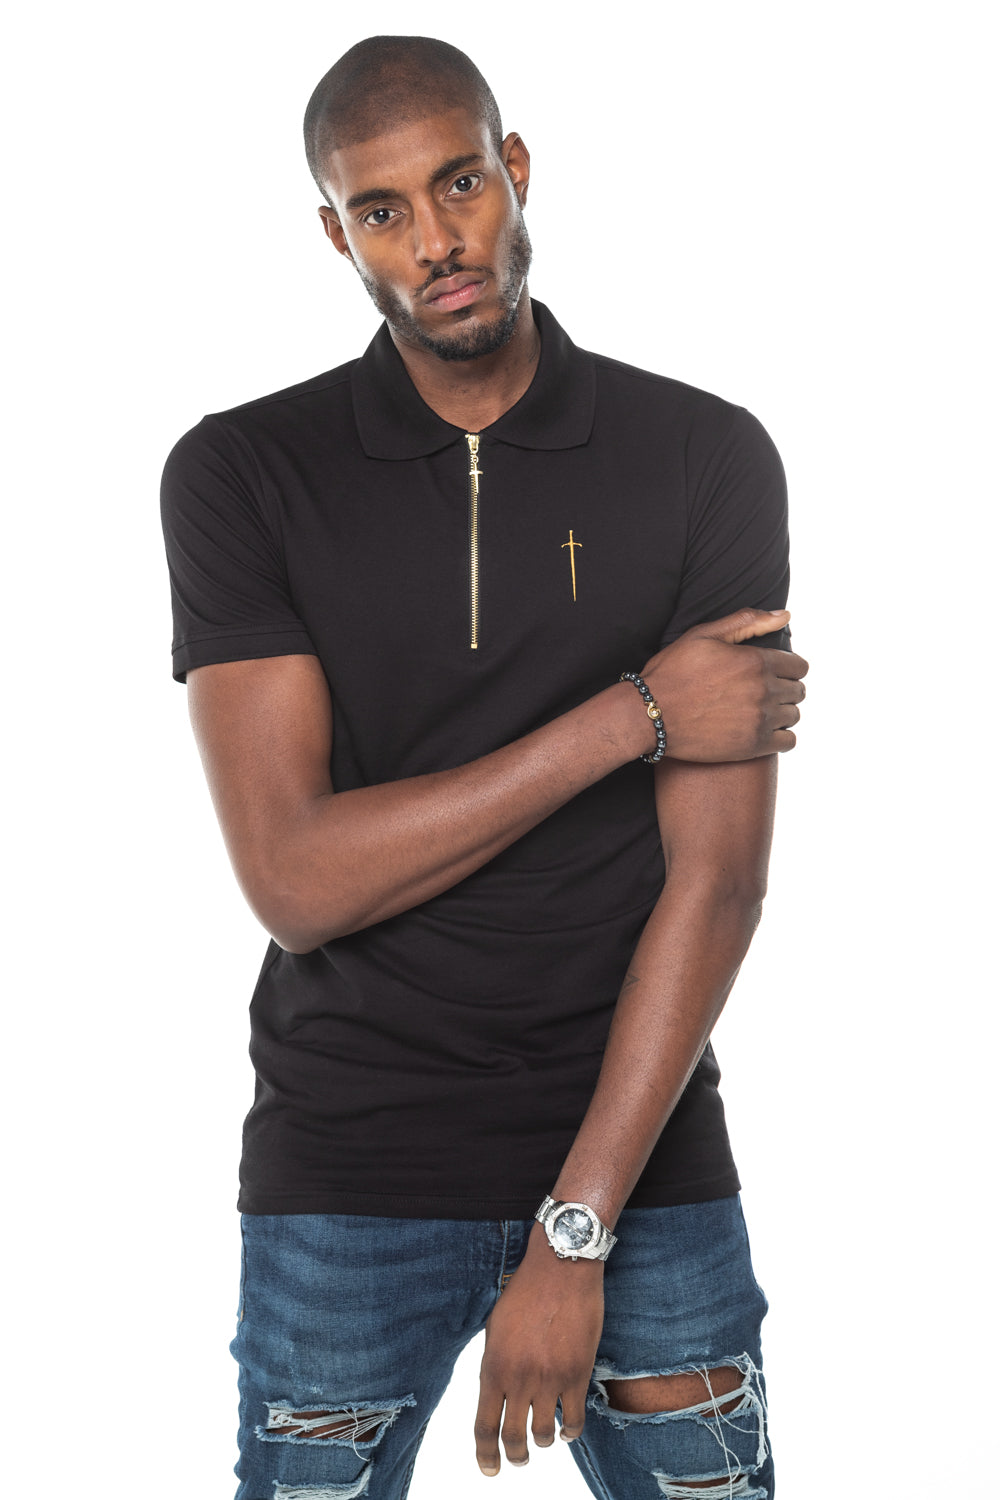 Envy Polo Shirt - Black & Gold